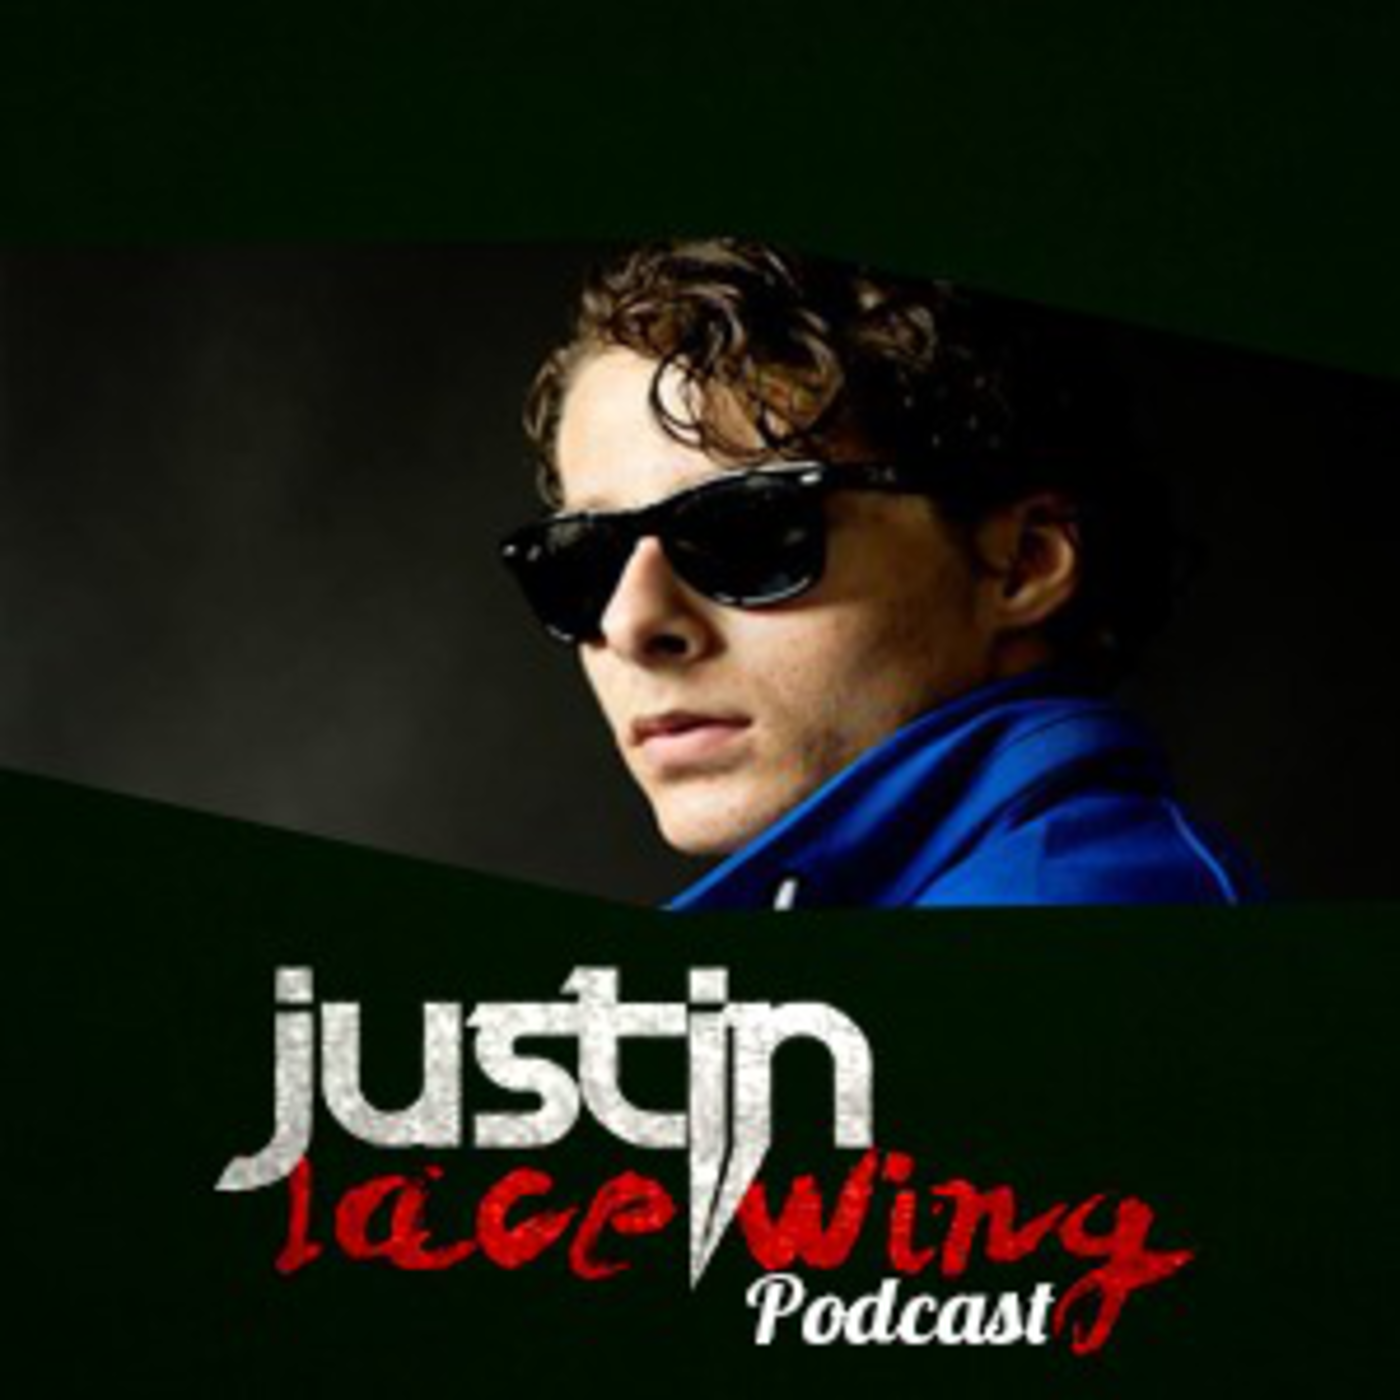 Justin Lacewing's Podcast